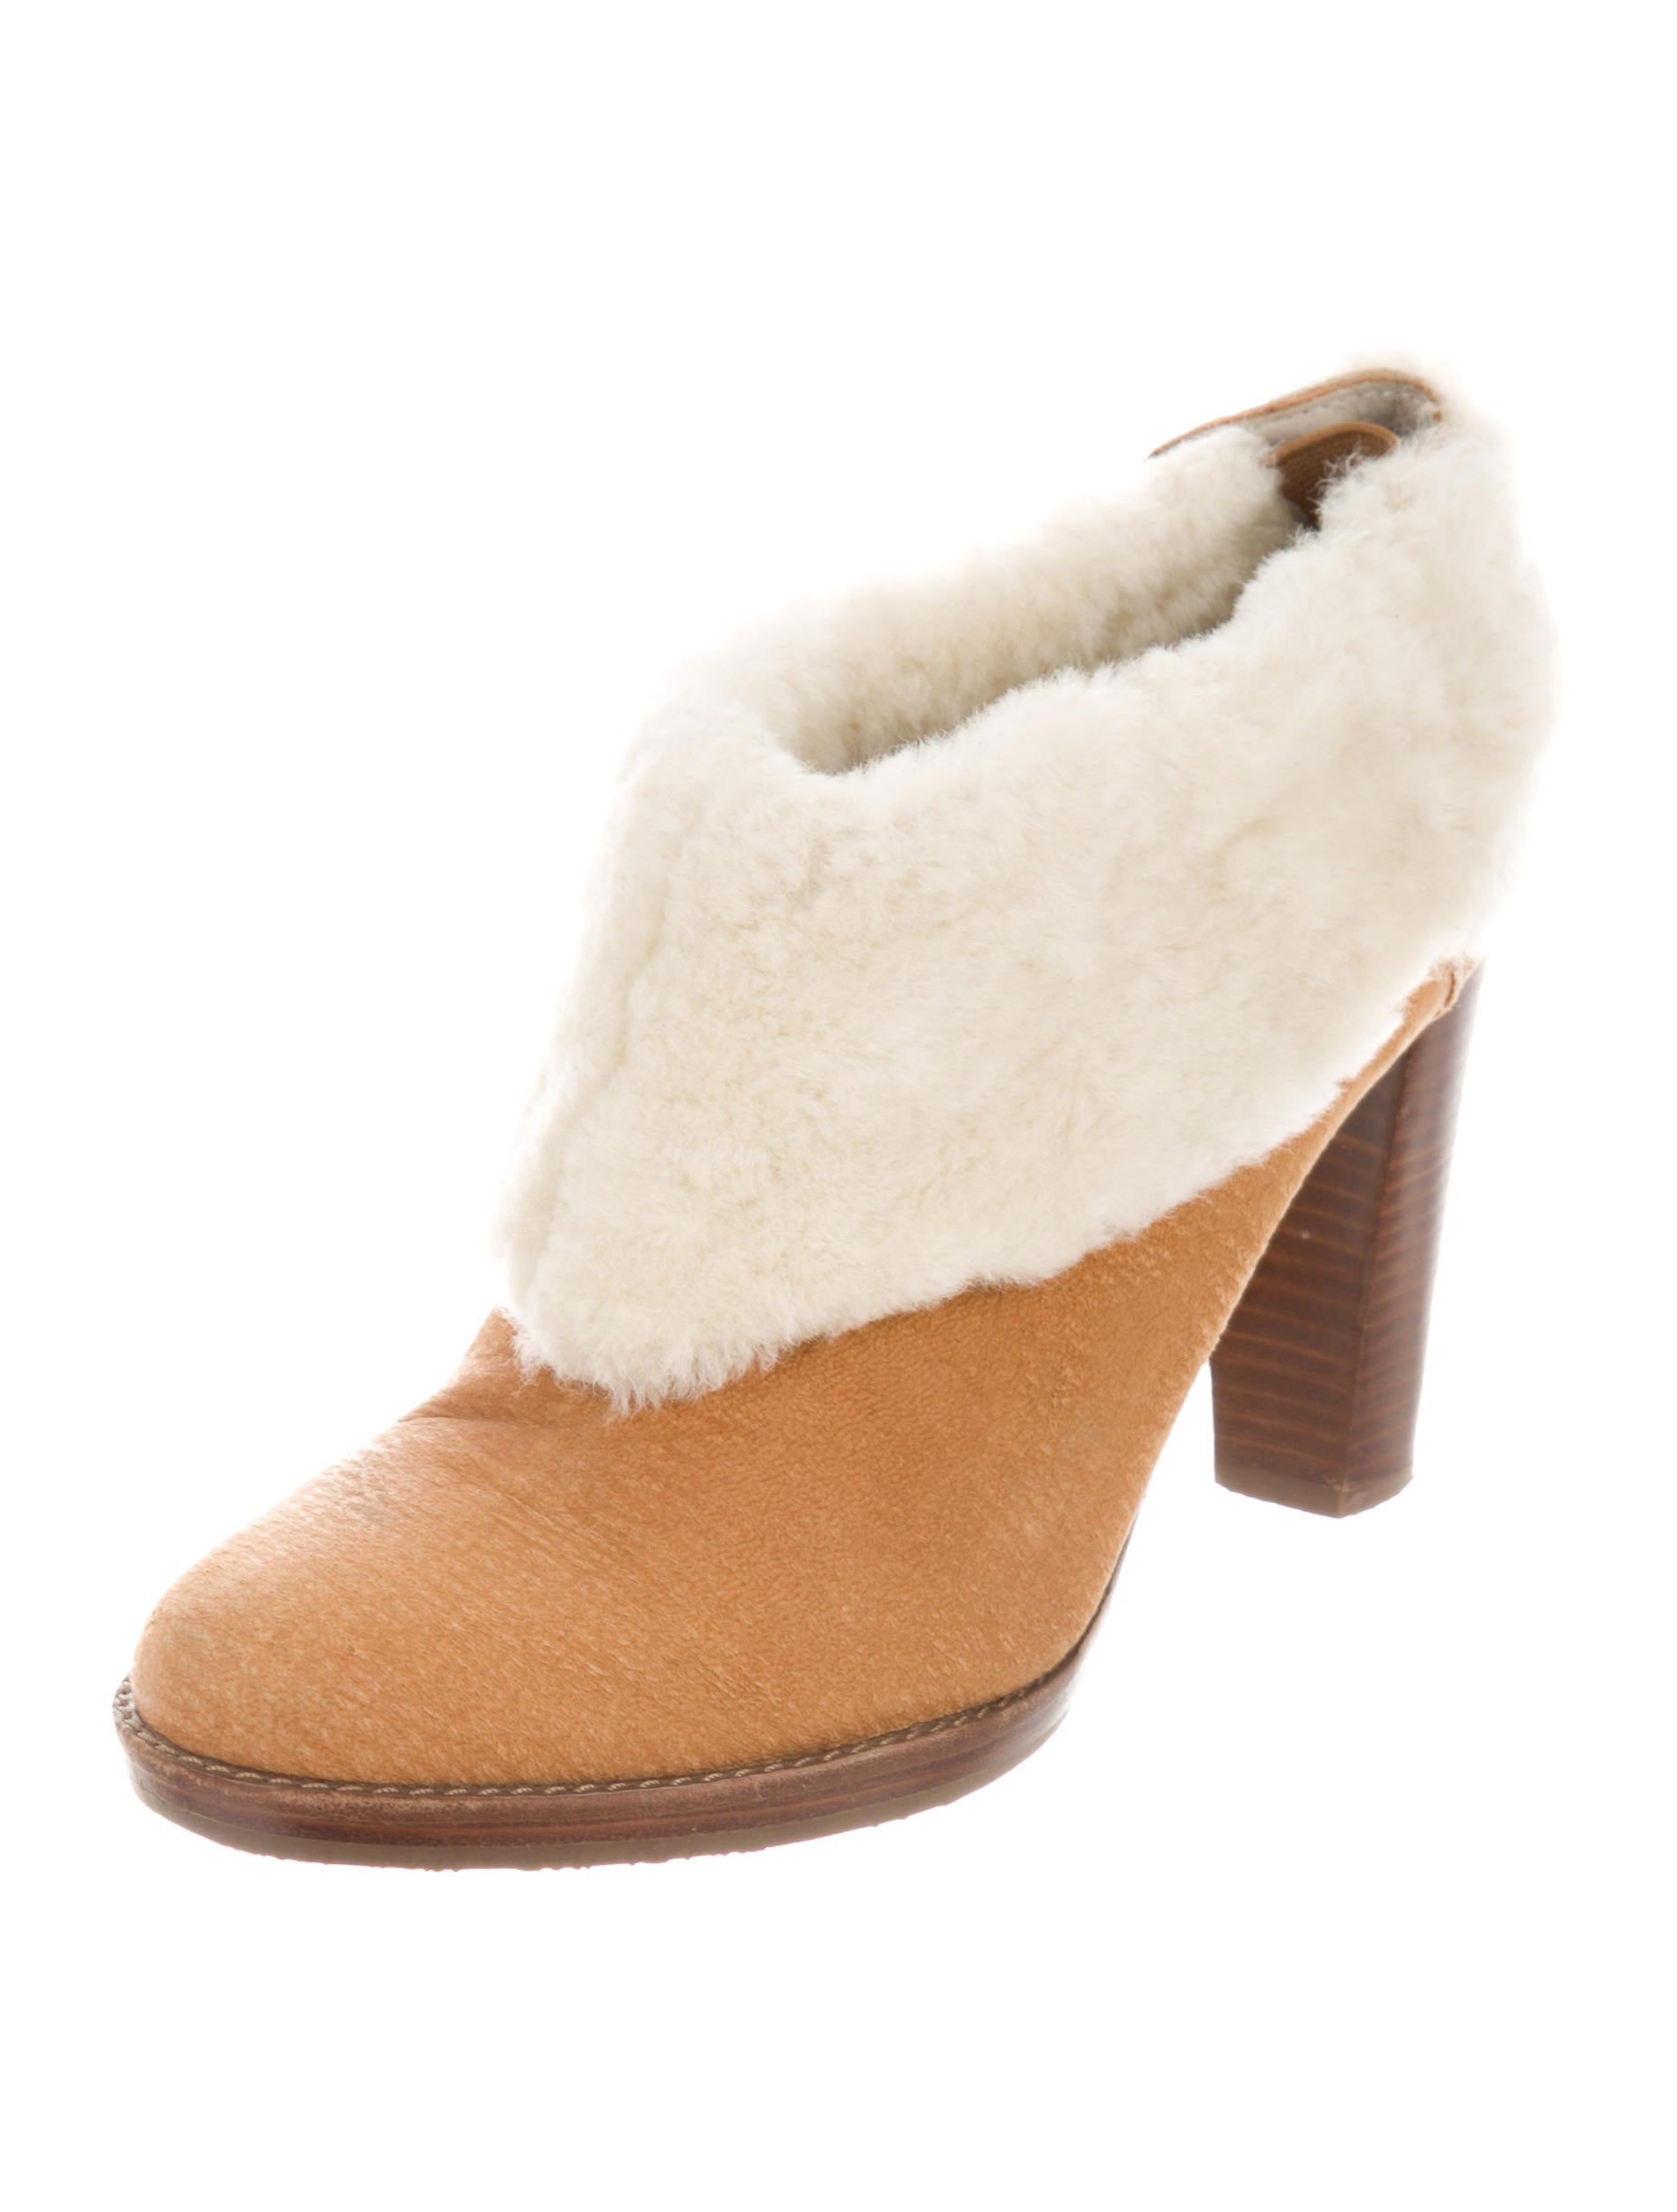 best place cheap online browse for sale Calvin Klein Sherpa-Trimmed Suede Booties visit cheap price clearance professional discount fast delivery qnQOj